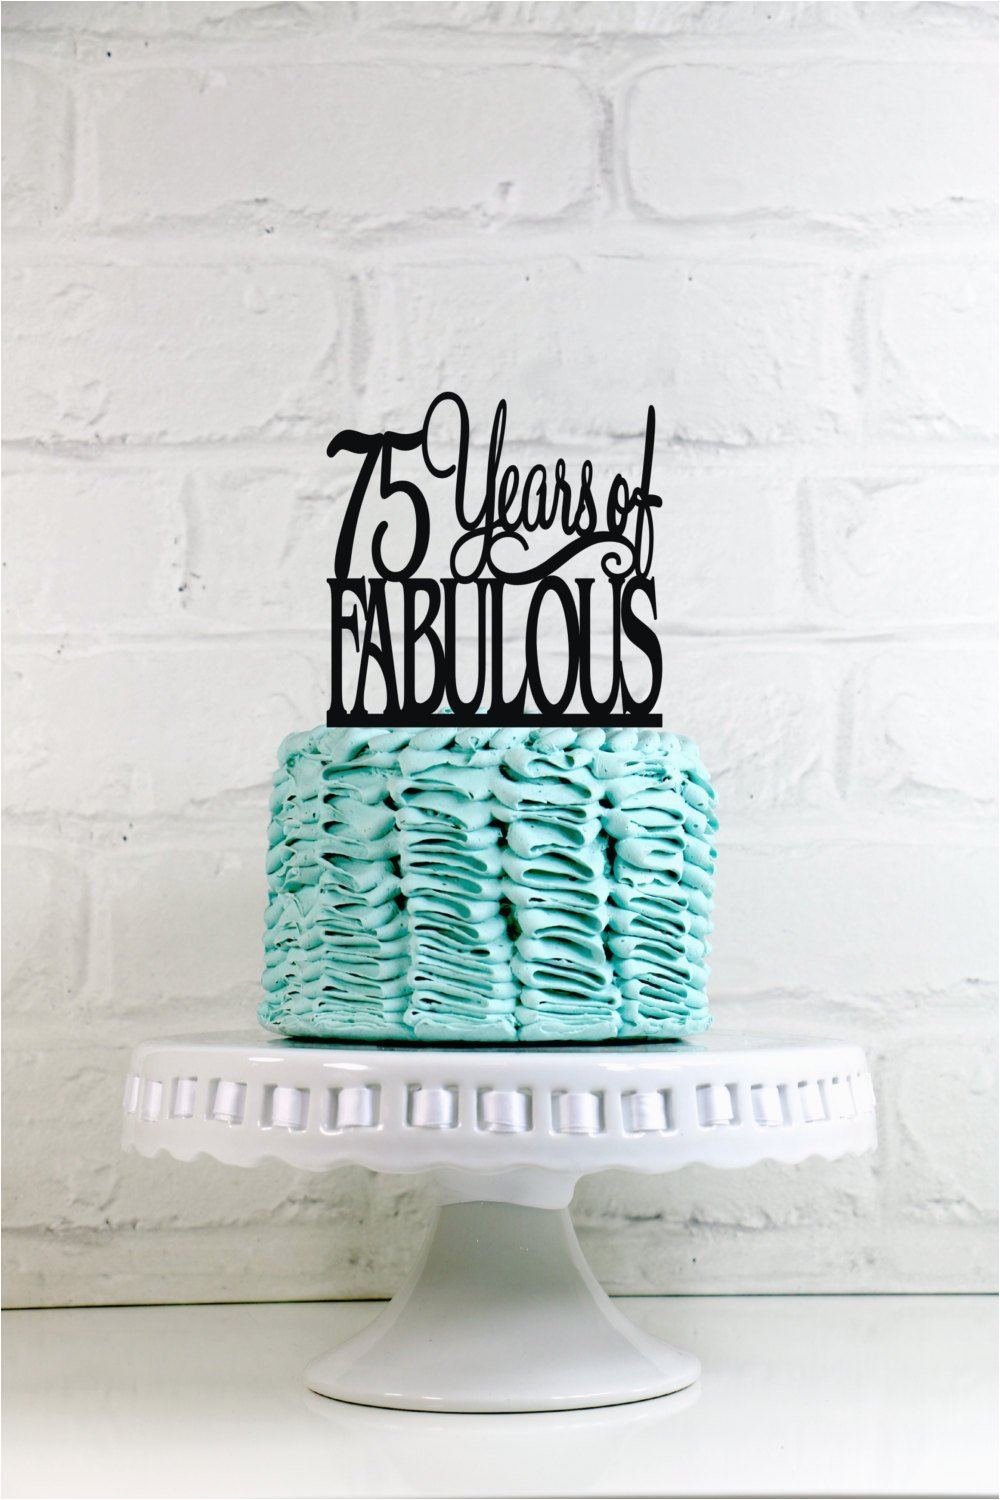 75 Birthday Decorations Years Of Fabulous 75th Cake Topper Or Sign